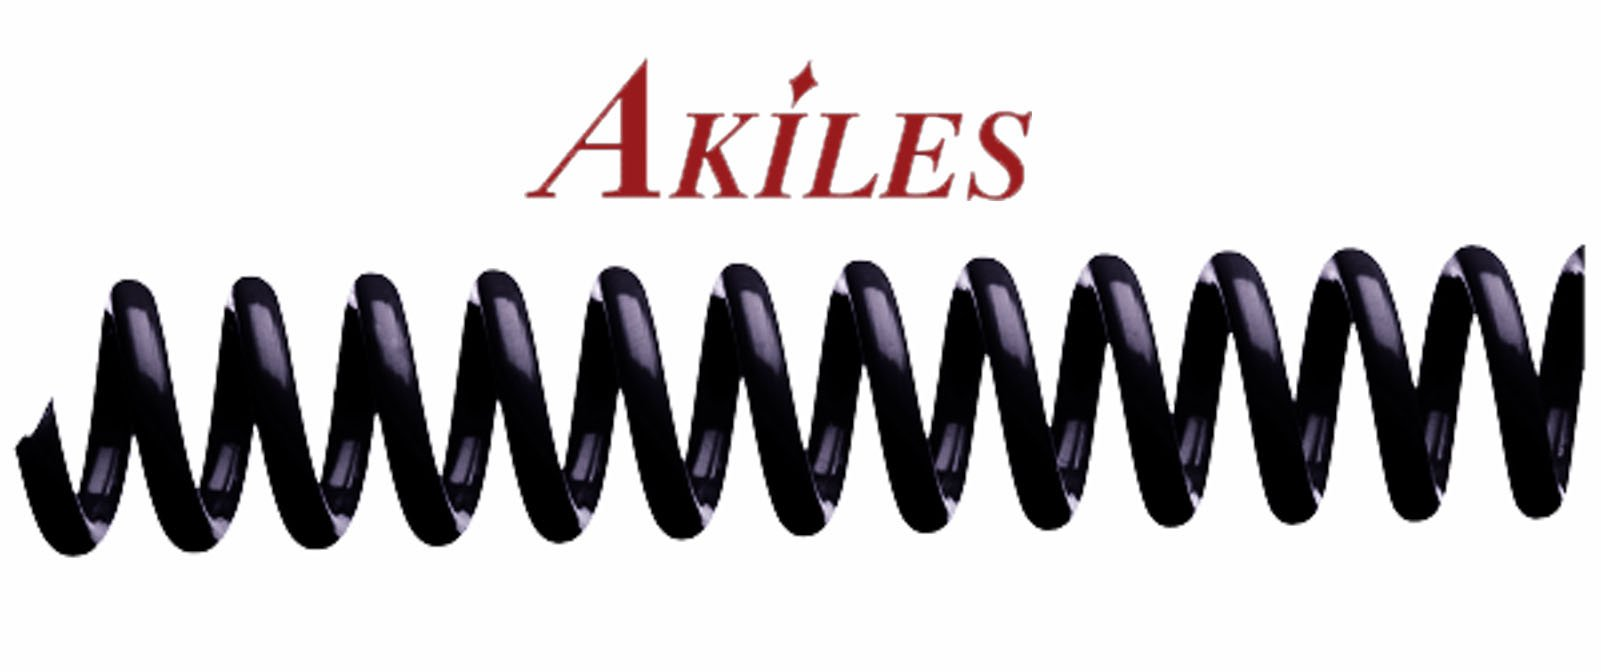 Akiles Spiral Coil Binding Spines 9mm (11/32 x 12-inch) 4:1 (pk of 100) Black